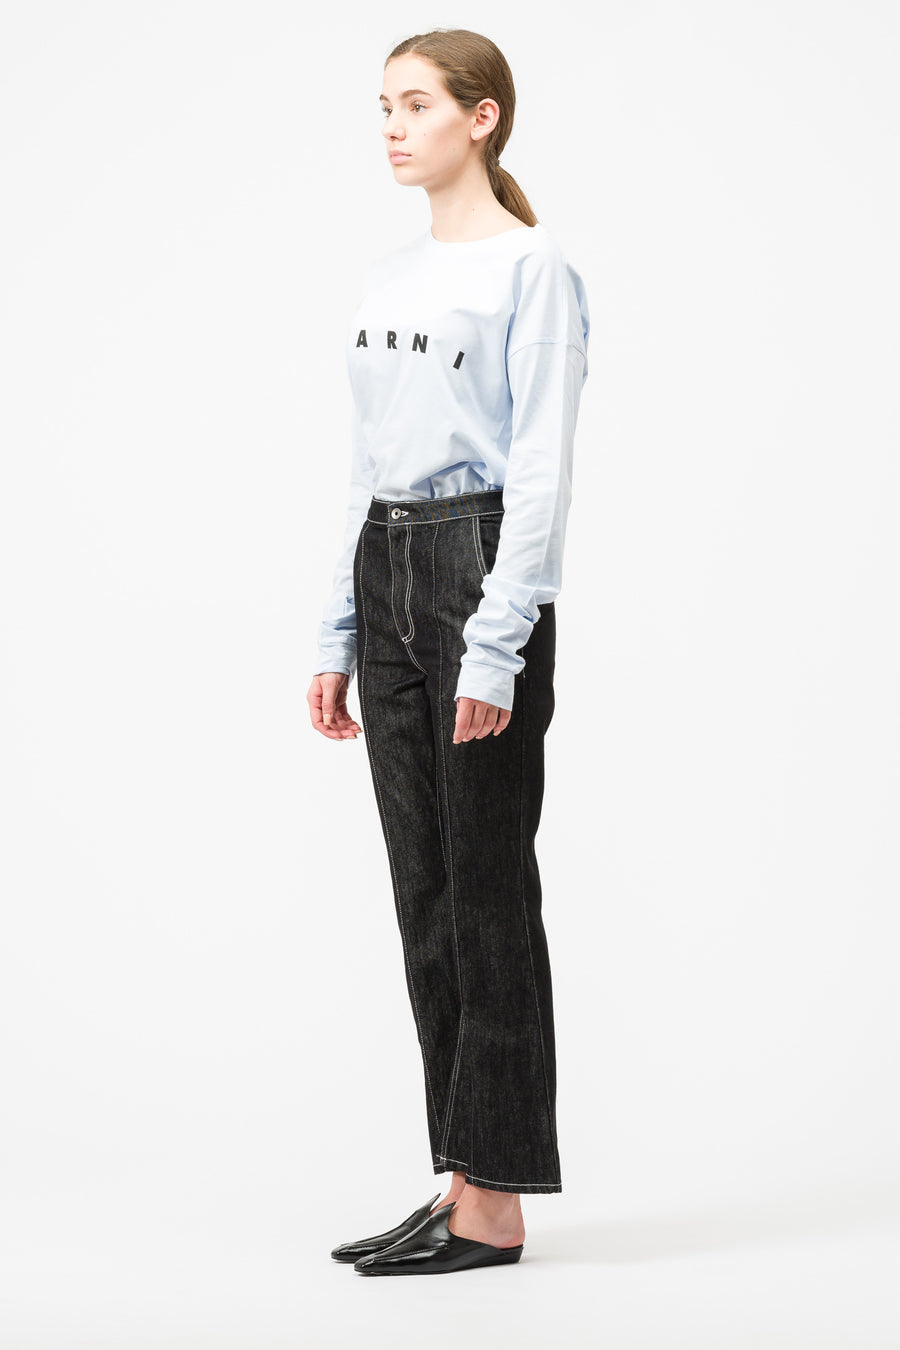 Marni Jeans Trouser in Black - Notre